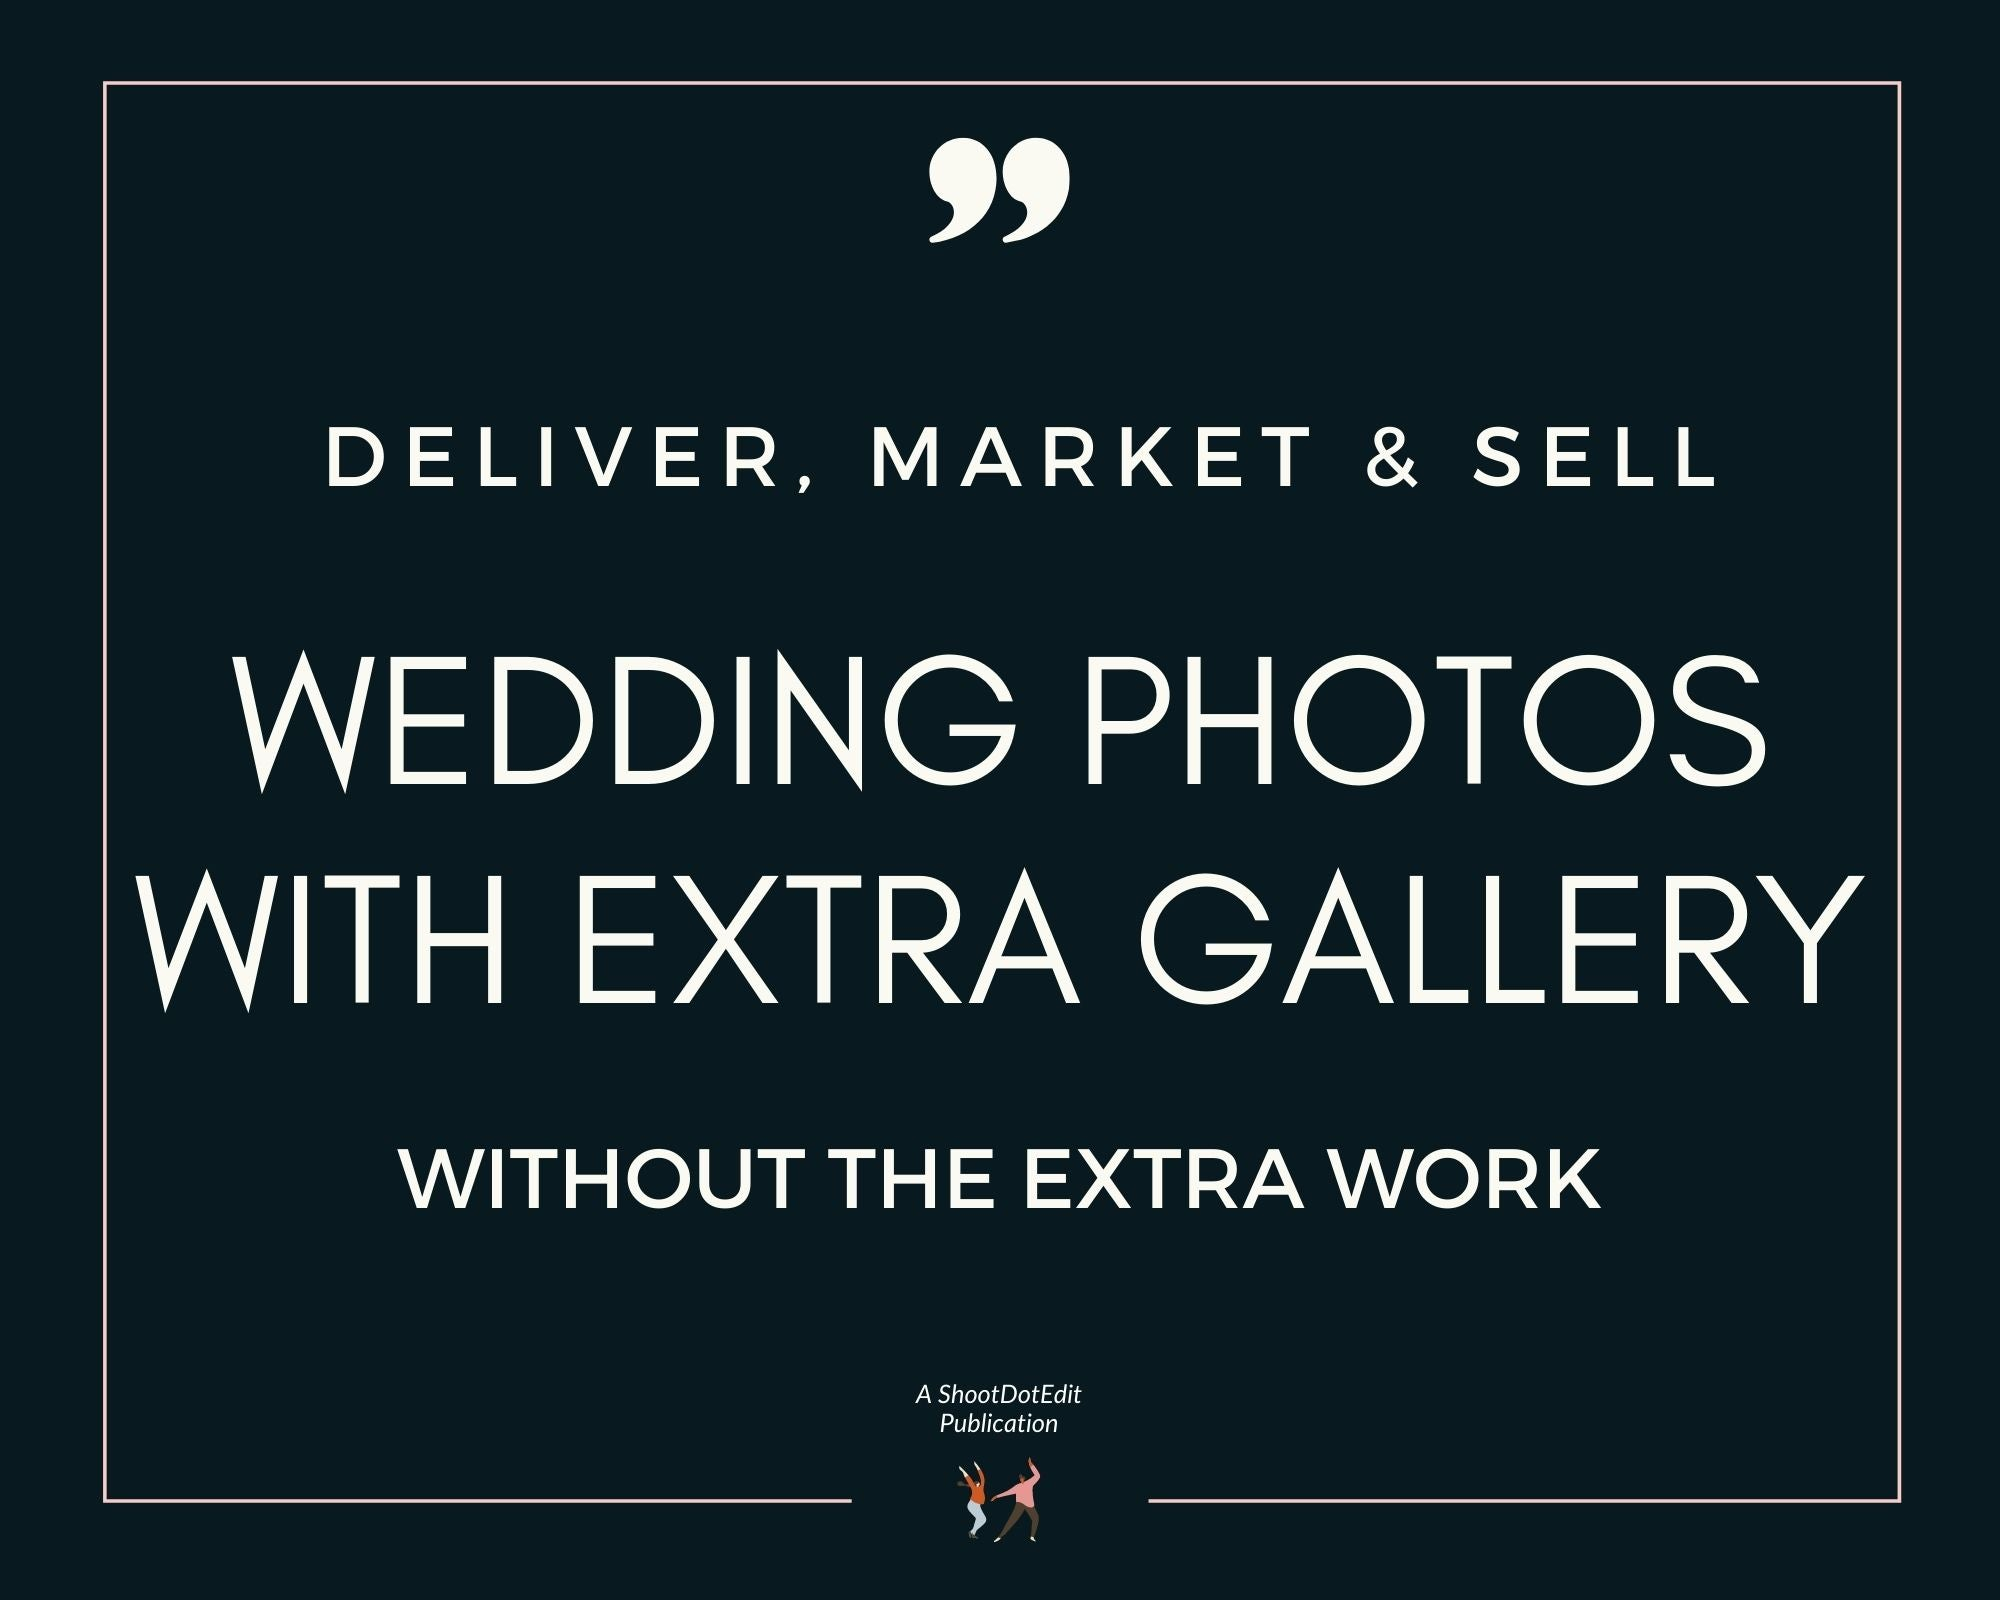 Infographic stating deliver, market and sell wedding photos with EXTRA gallery without the extra work